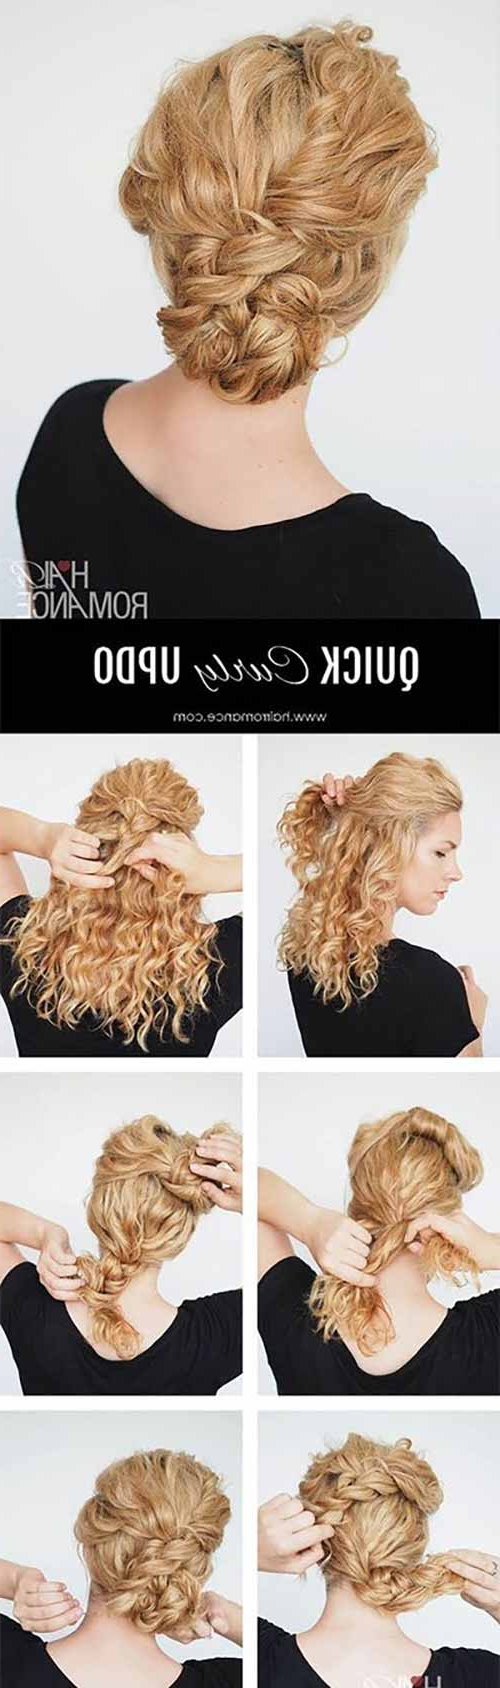 Well Known Messy Updo Hairstyles With Free Curly Ends Throughout 20 Incredibly Stunning Diy Updos For Curly Hair (Gallery 3 of 20)